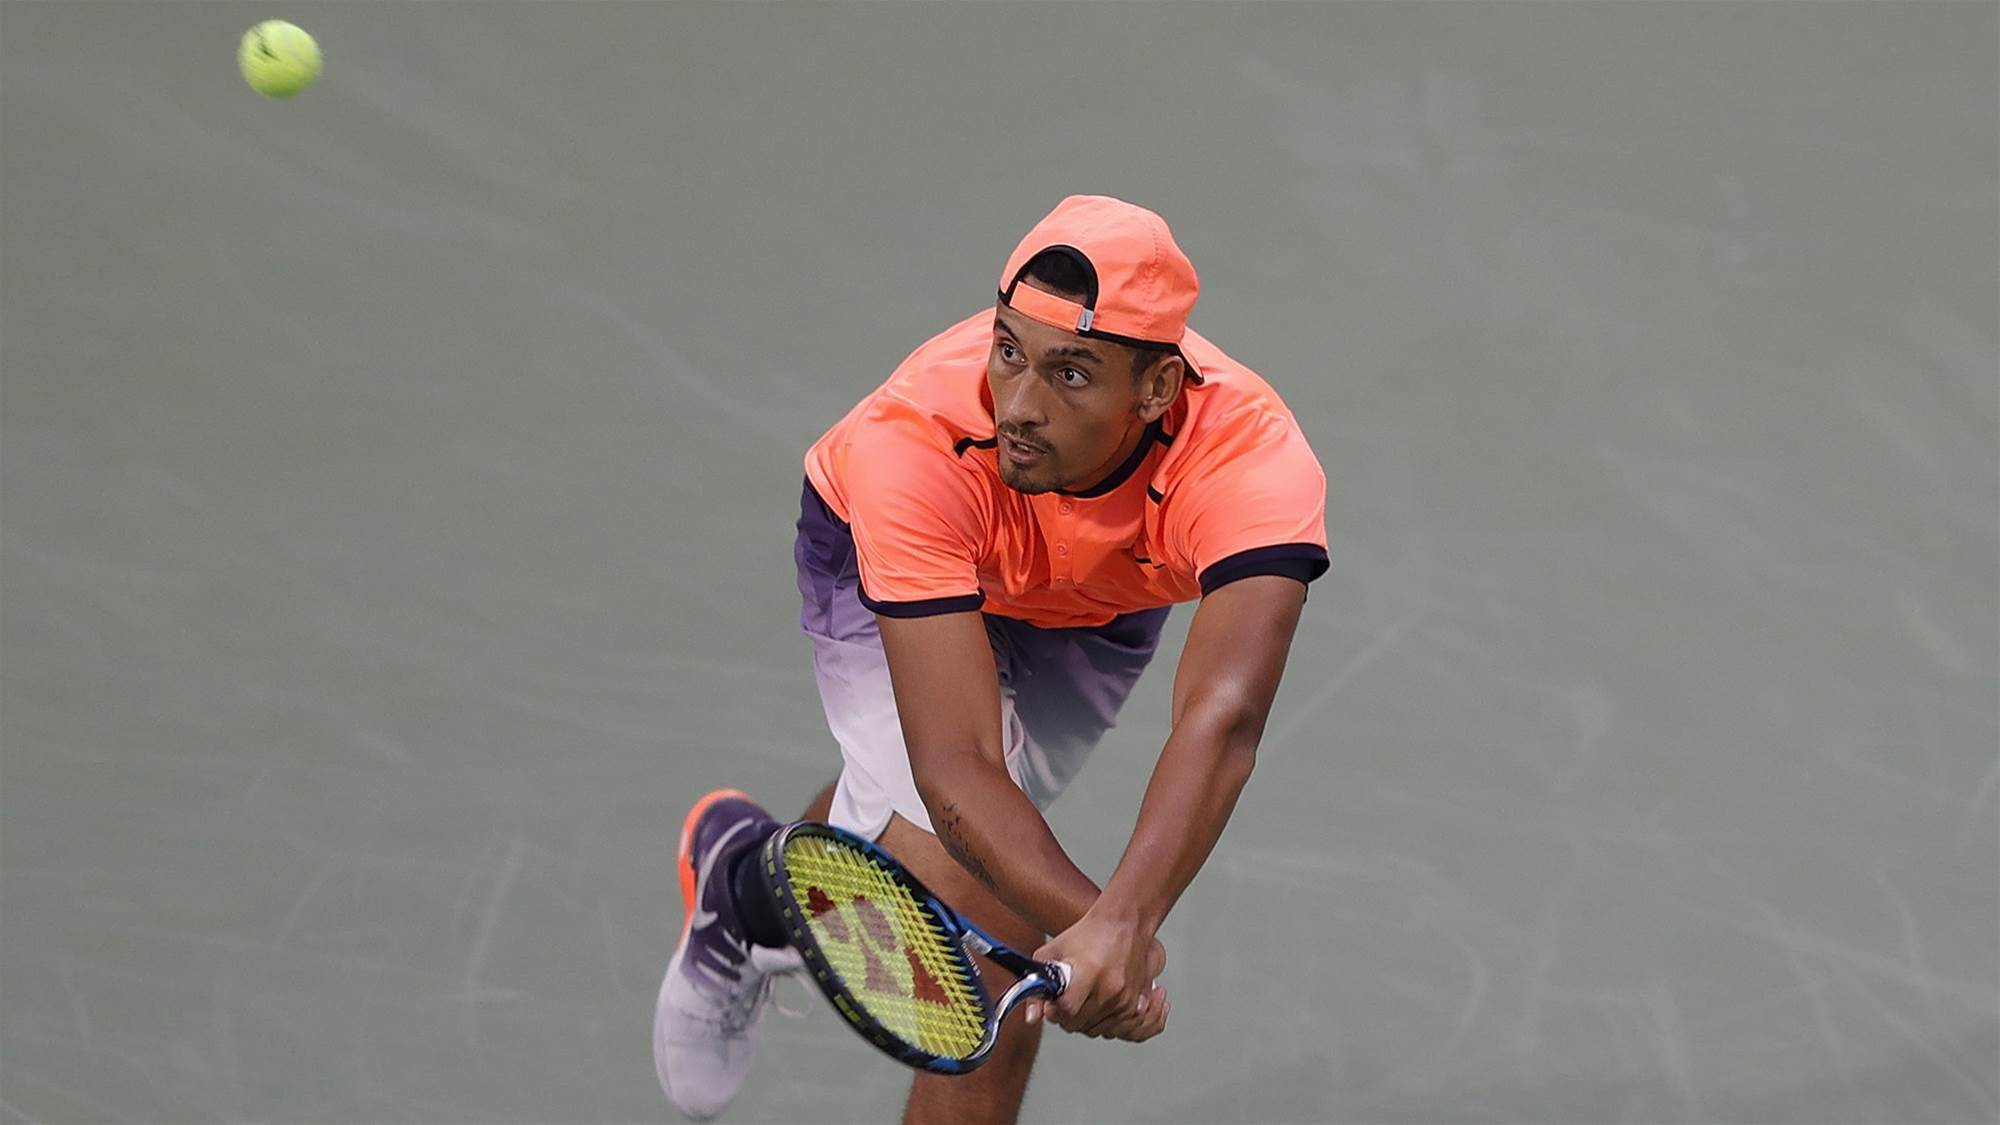 Kyrgios driven by wins not rankings